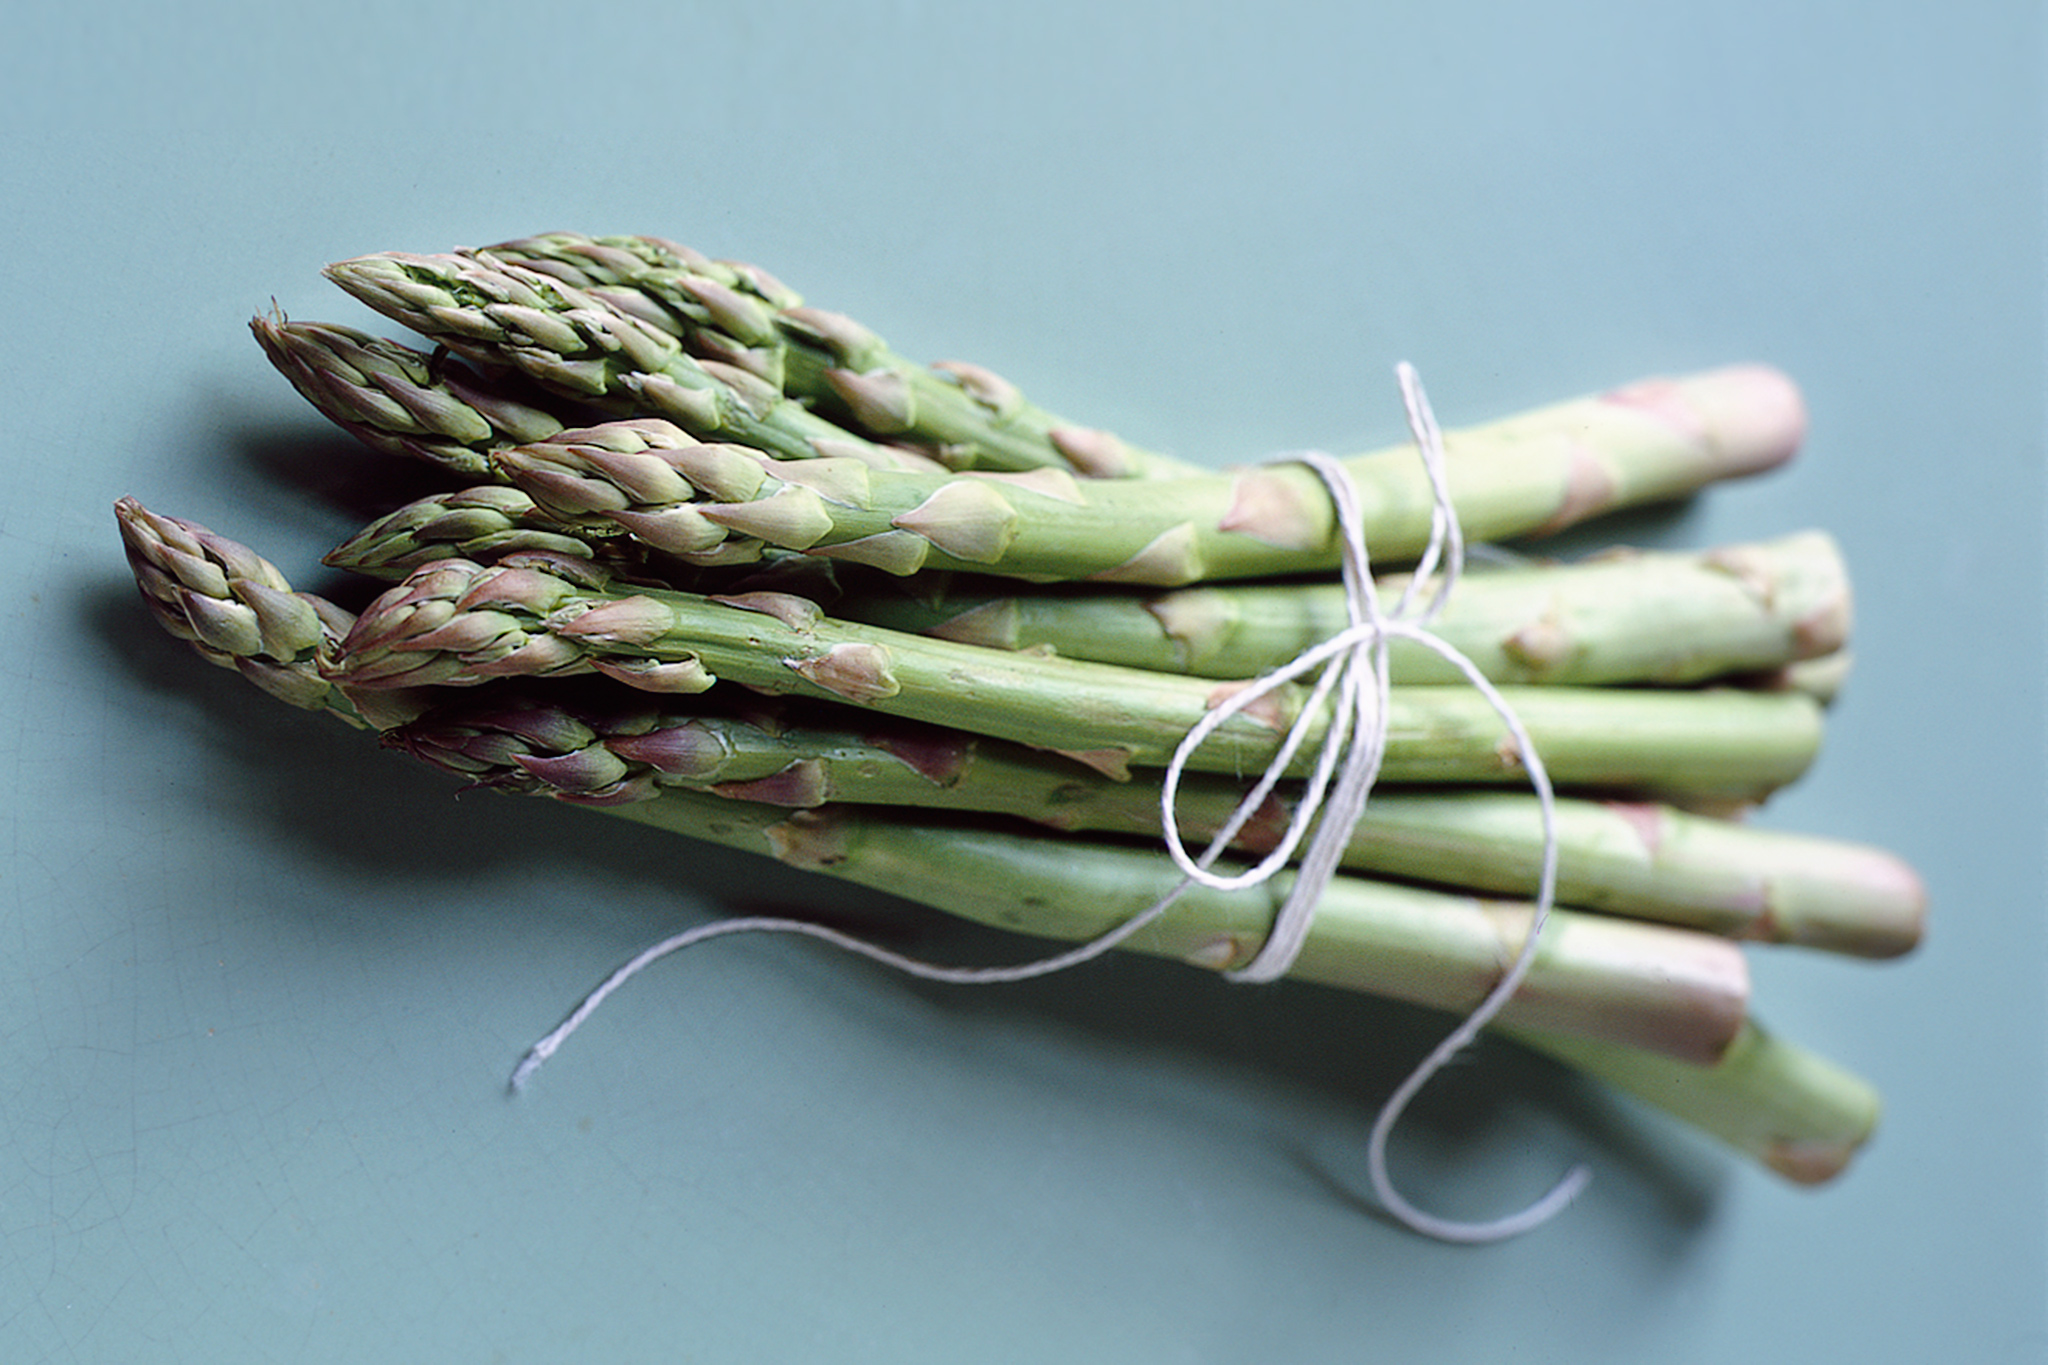 asparagus-photo-by-simon-walton-courtesy-of-bbc-good-food-magazine-and-www-bbcgoodfood-com-4